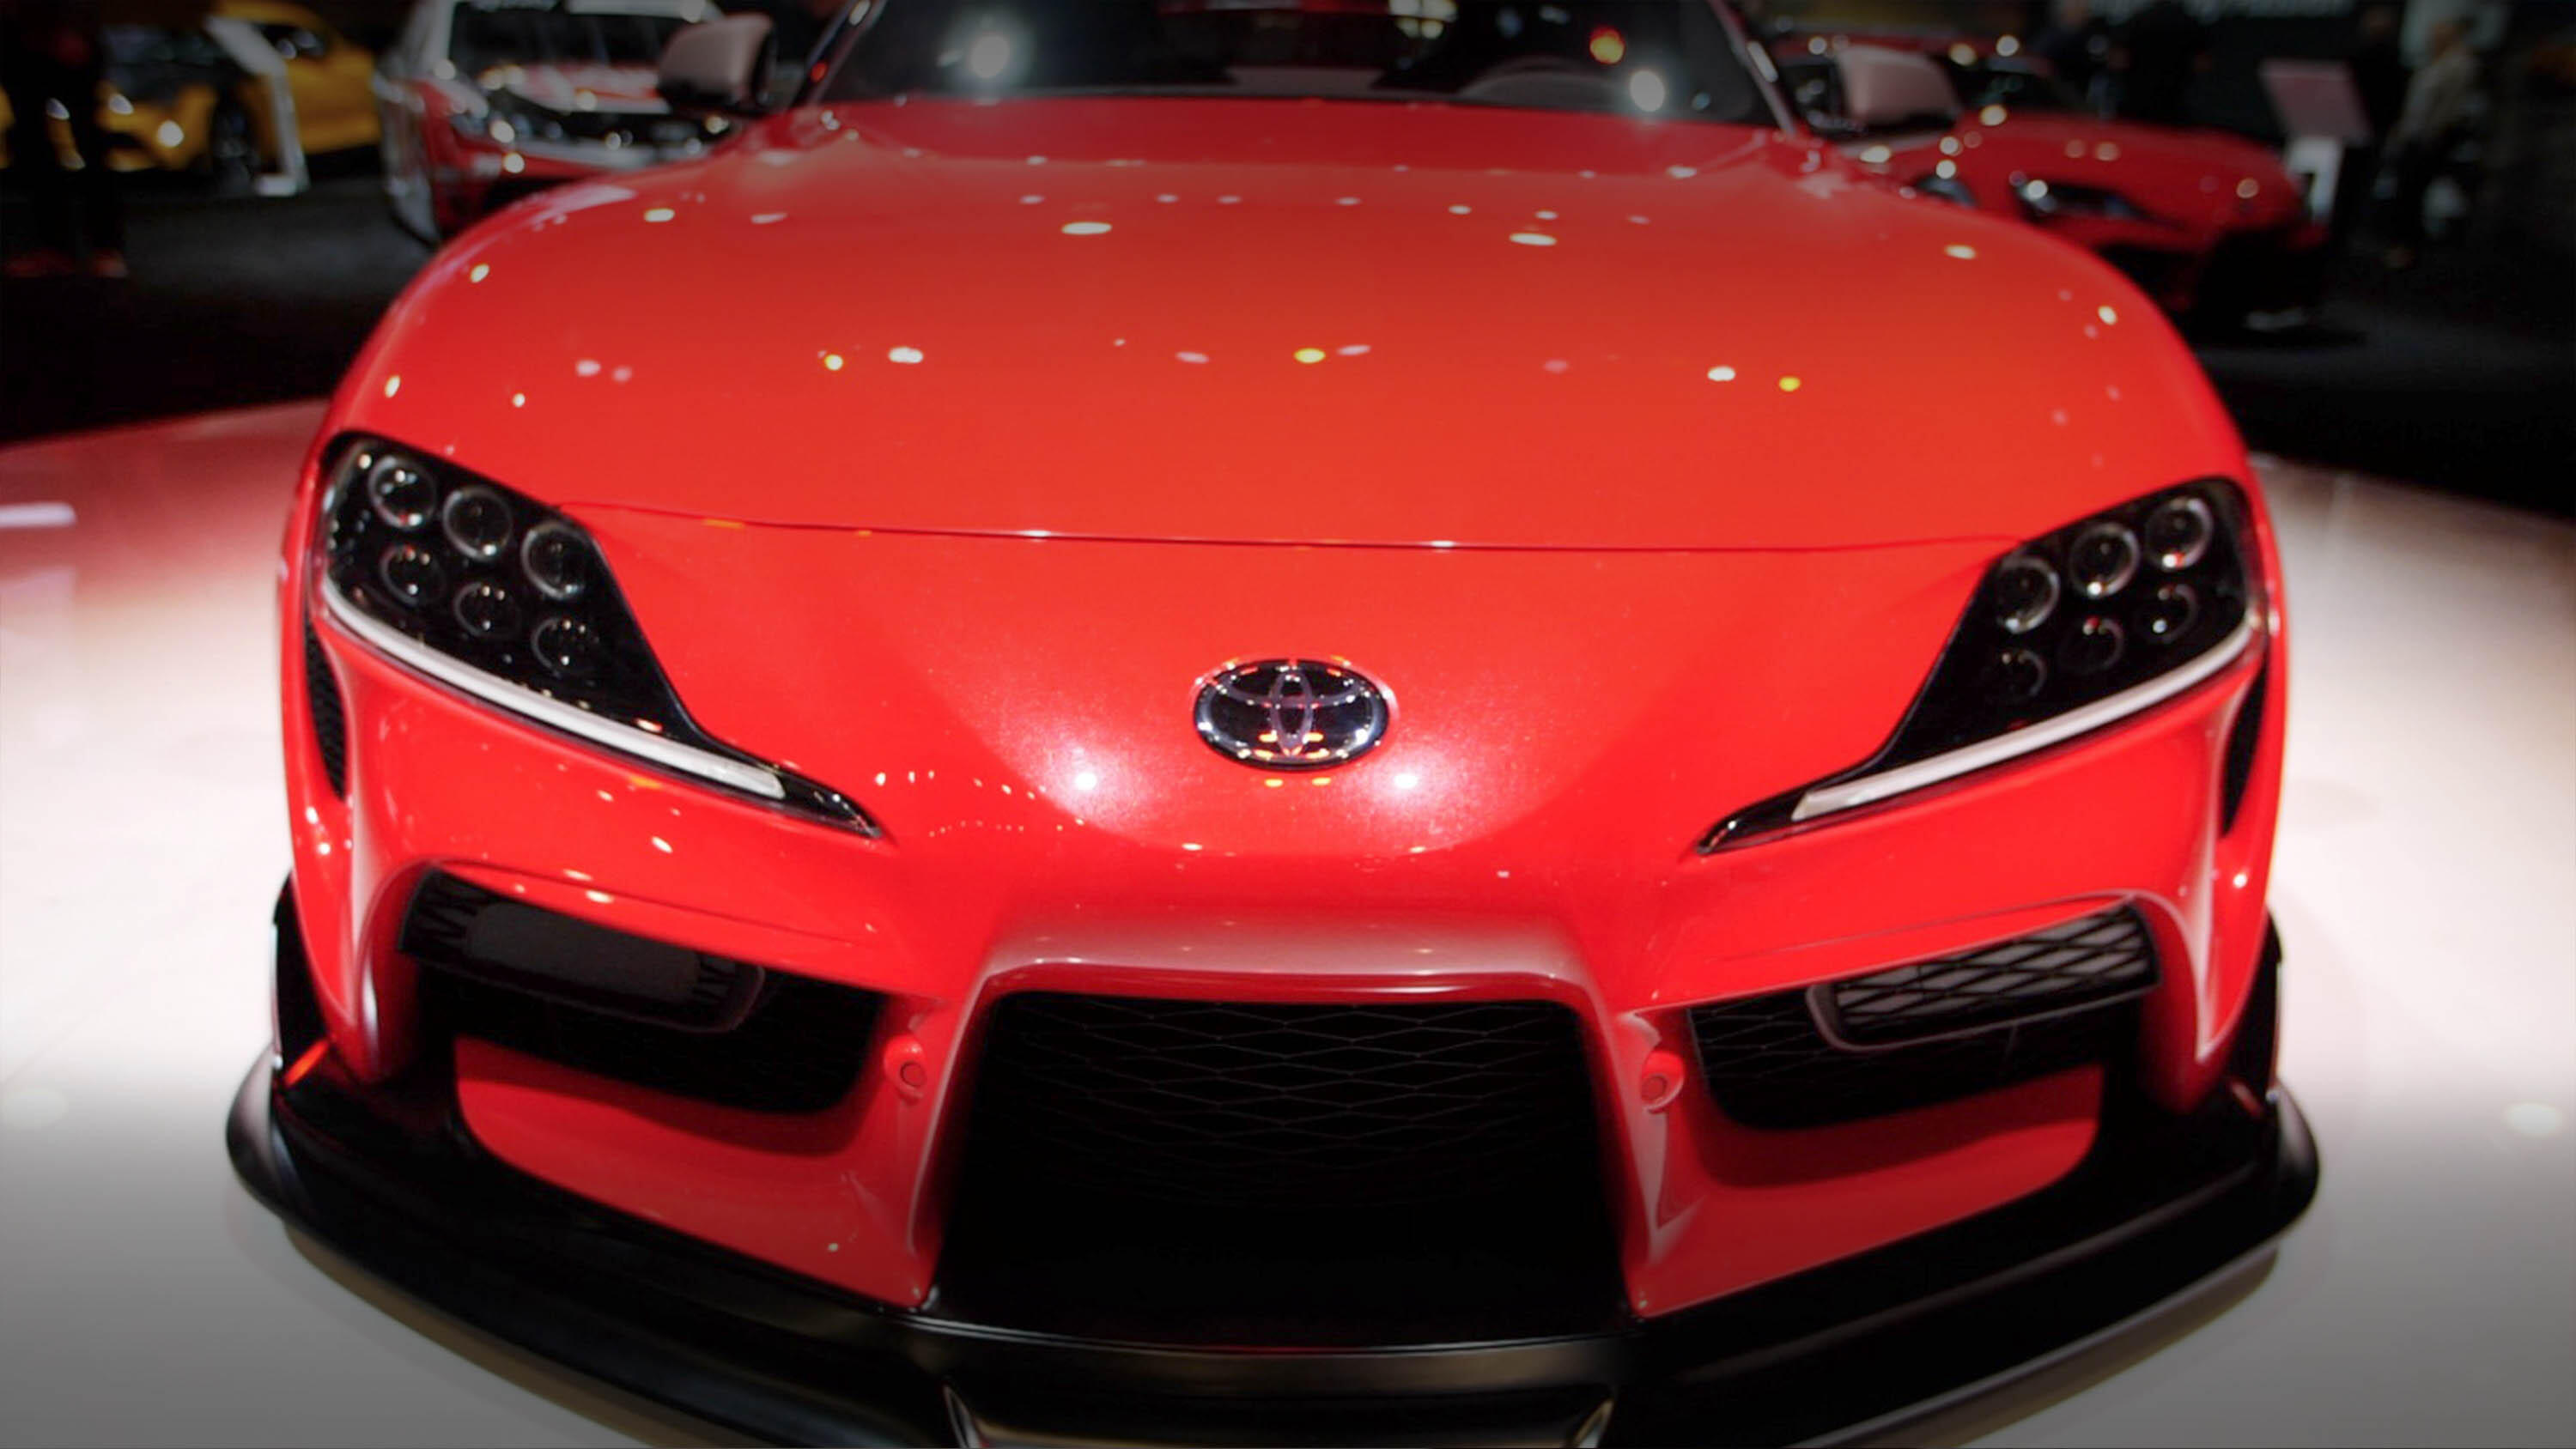 Video: Check out these Toyota Supra build-off concepts at SEMA